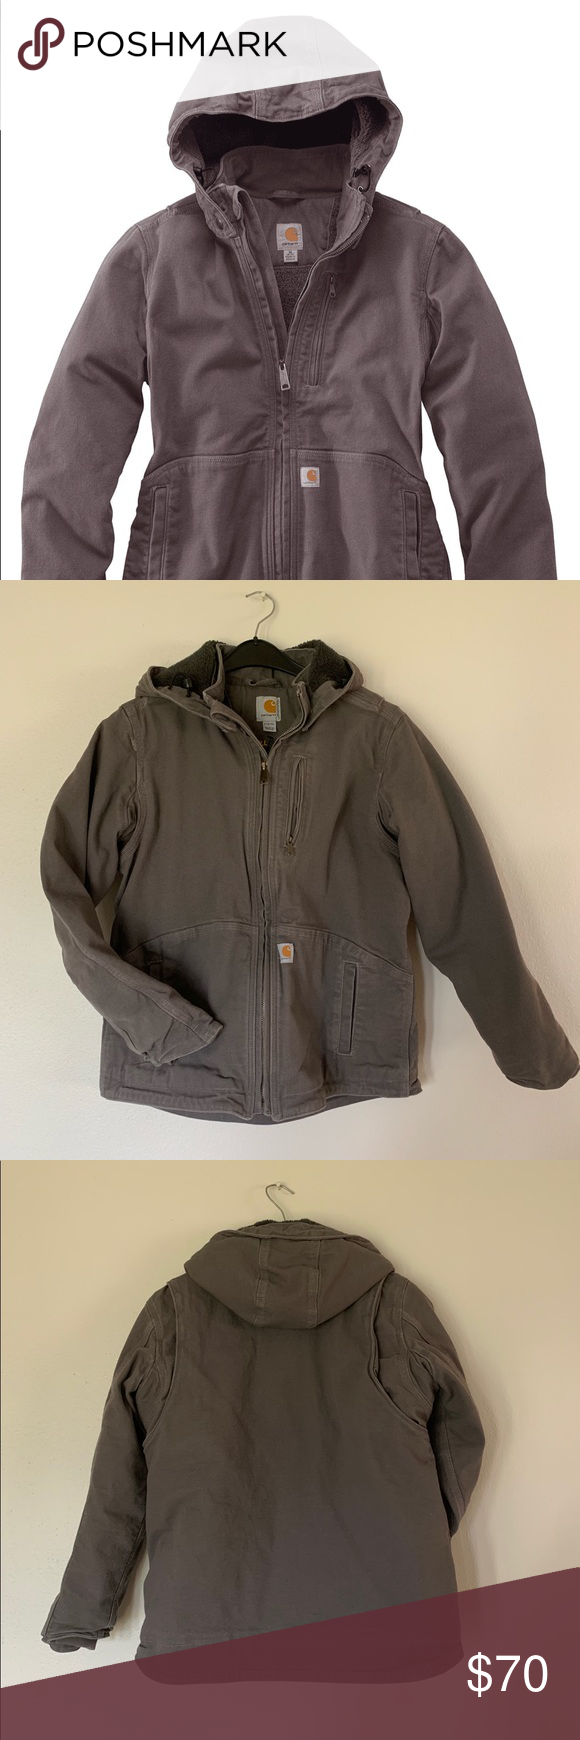 "Carhartt Women's Full Swing Jacket. Large 10/12 Almost new  Carhartt Women's Caldwell Jacket.  Worn (and washed) only once.  Zipper closure, lots of pockets, removable hood, super warm and comfy.  No holes, rips or stains.  From a very clean smoke free home.             Color is Taupe Grey/ shadow.                  Chest:  39"".    Waist: 33.   Hip: 42.5.  Measurements are approximate and taken while flat. Carhartt Jackets & Coats Utility Jackets #carharttwomen Carhartt Women's Full Swing #carharttwomen"